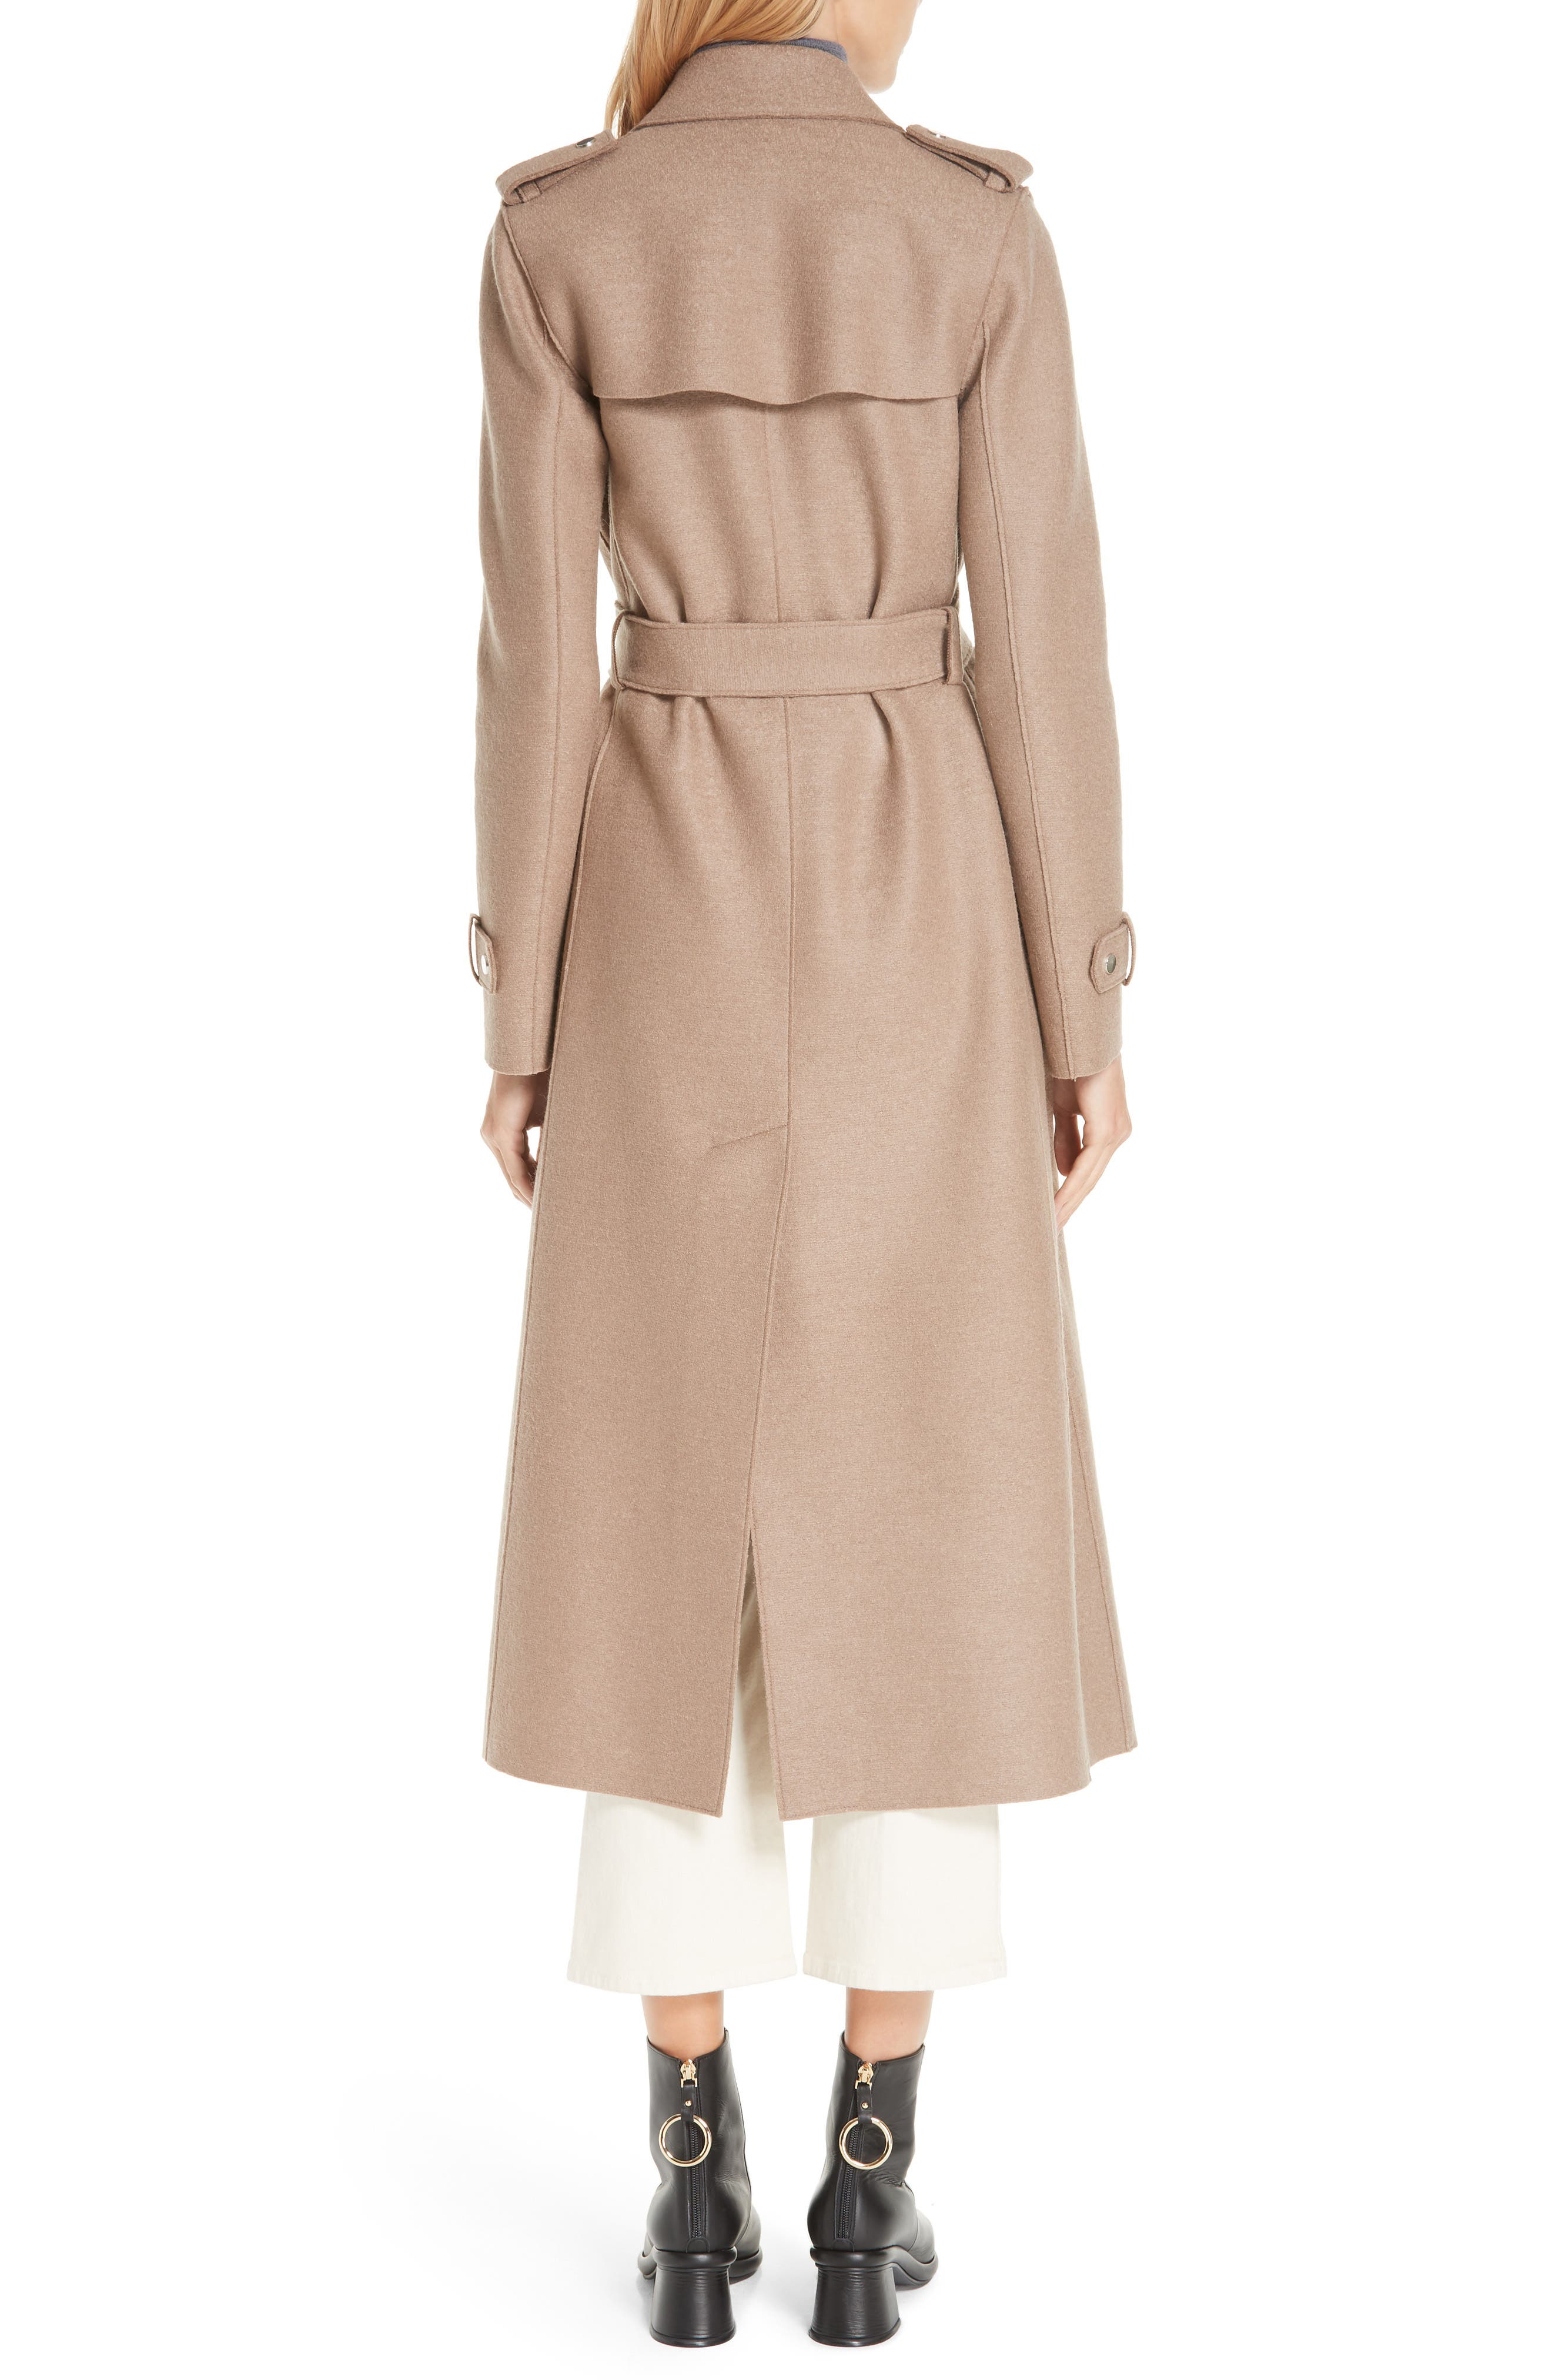 HARRIS WHARF LONDON, Long Belted Trench, Alternate thumbnail 2, color, CAMEL